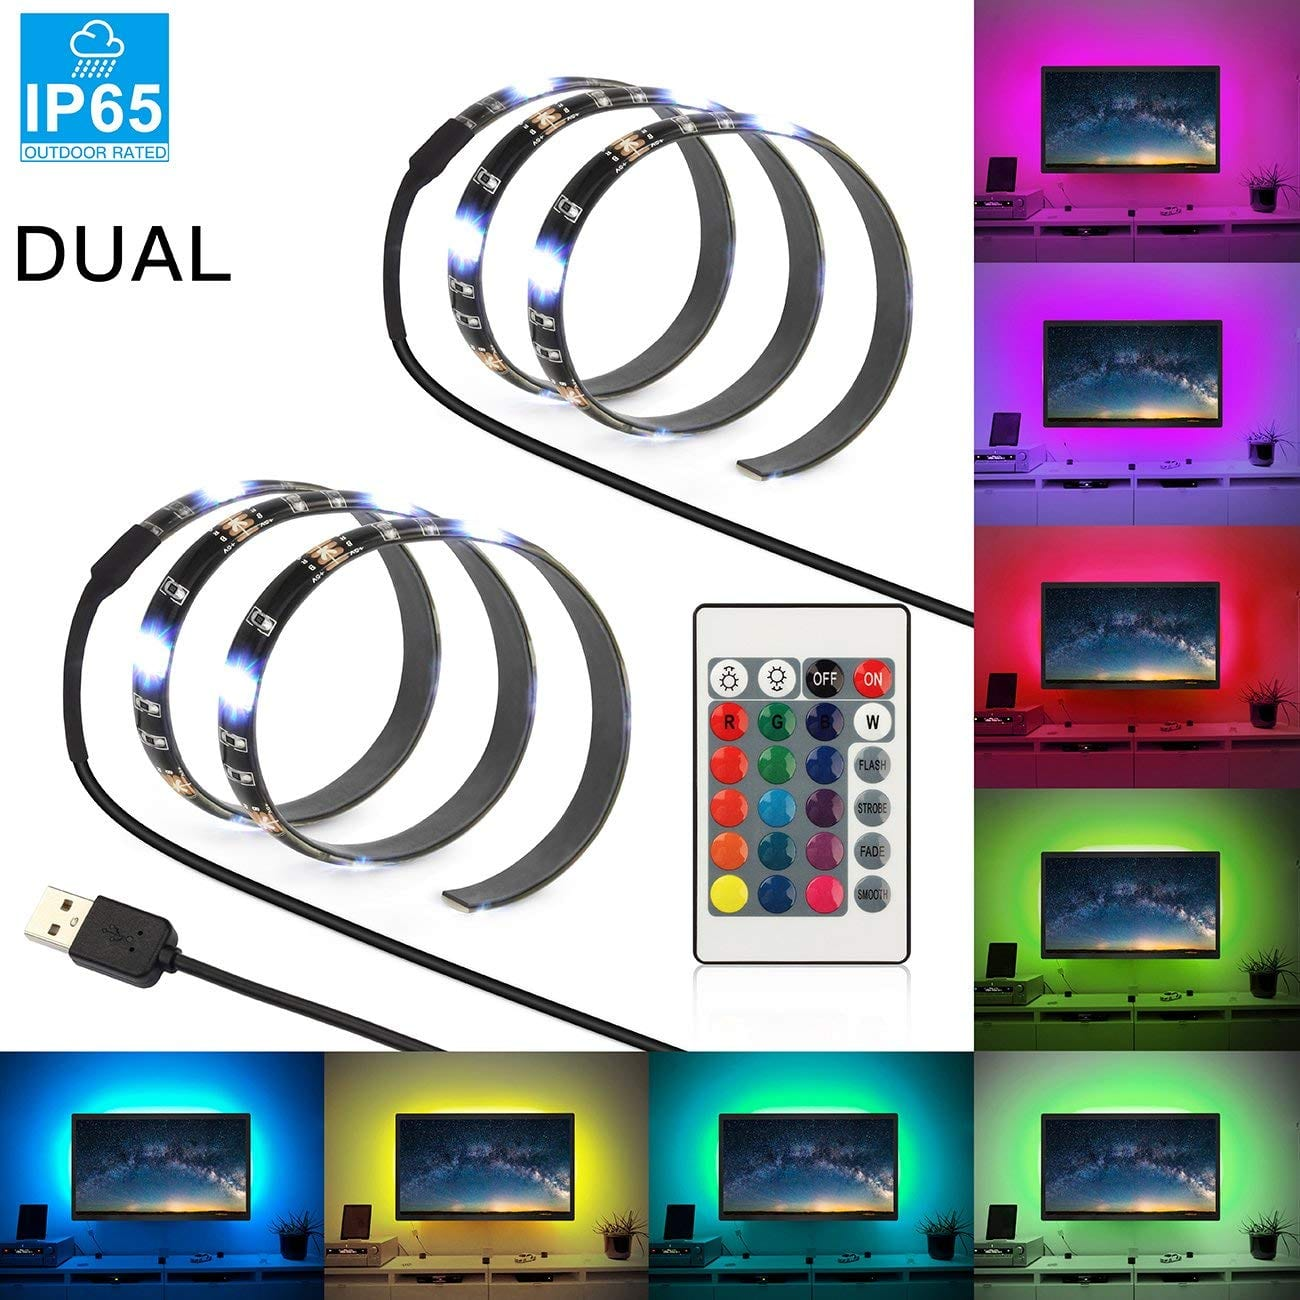 USB LED Strip Light, SHINE HAI 7.2W 2×1.64ft Dual Flexible Bias Lighting LED TV Backlight, Waterproof IP65 with 24 Keys RGB Control and 5V USB Connectors for HDTV Background $6.99